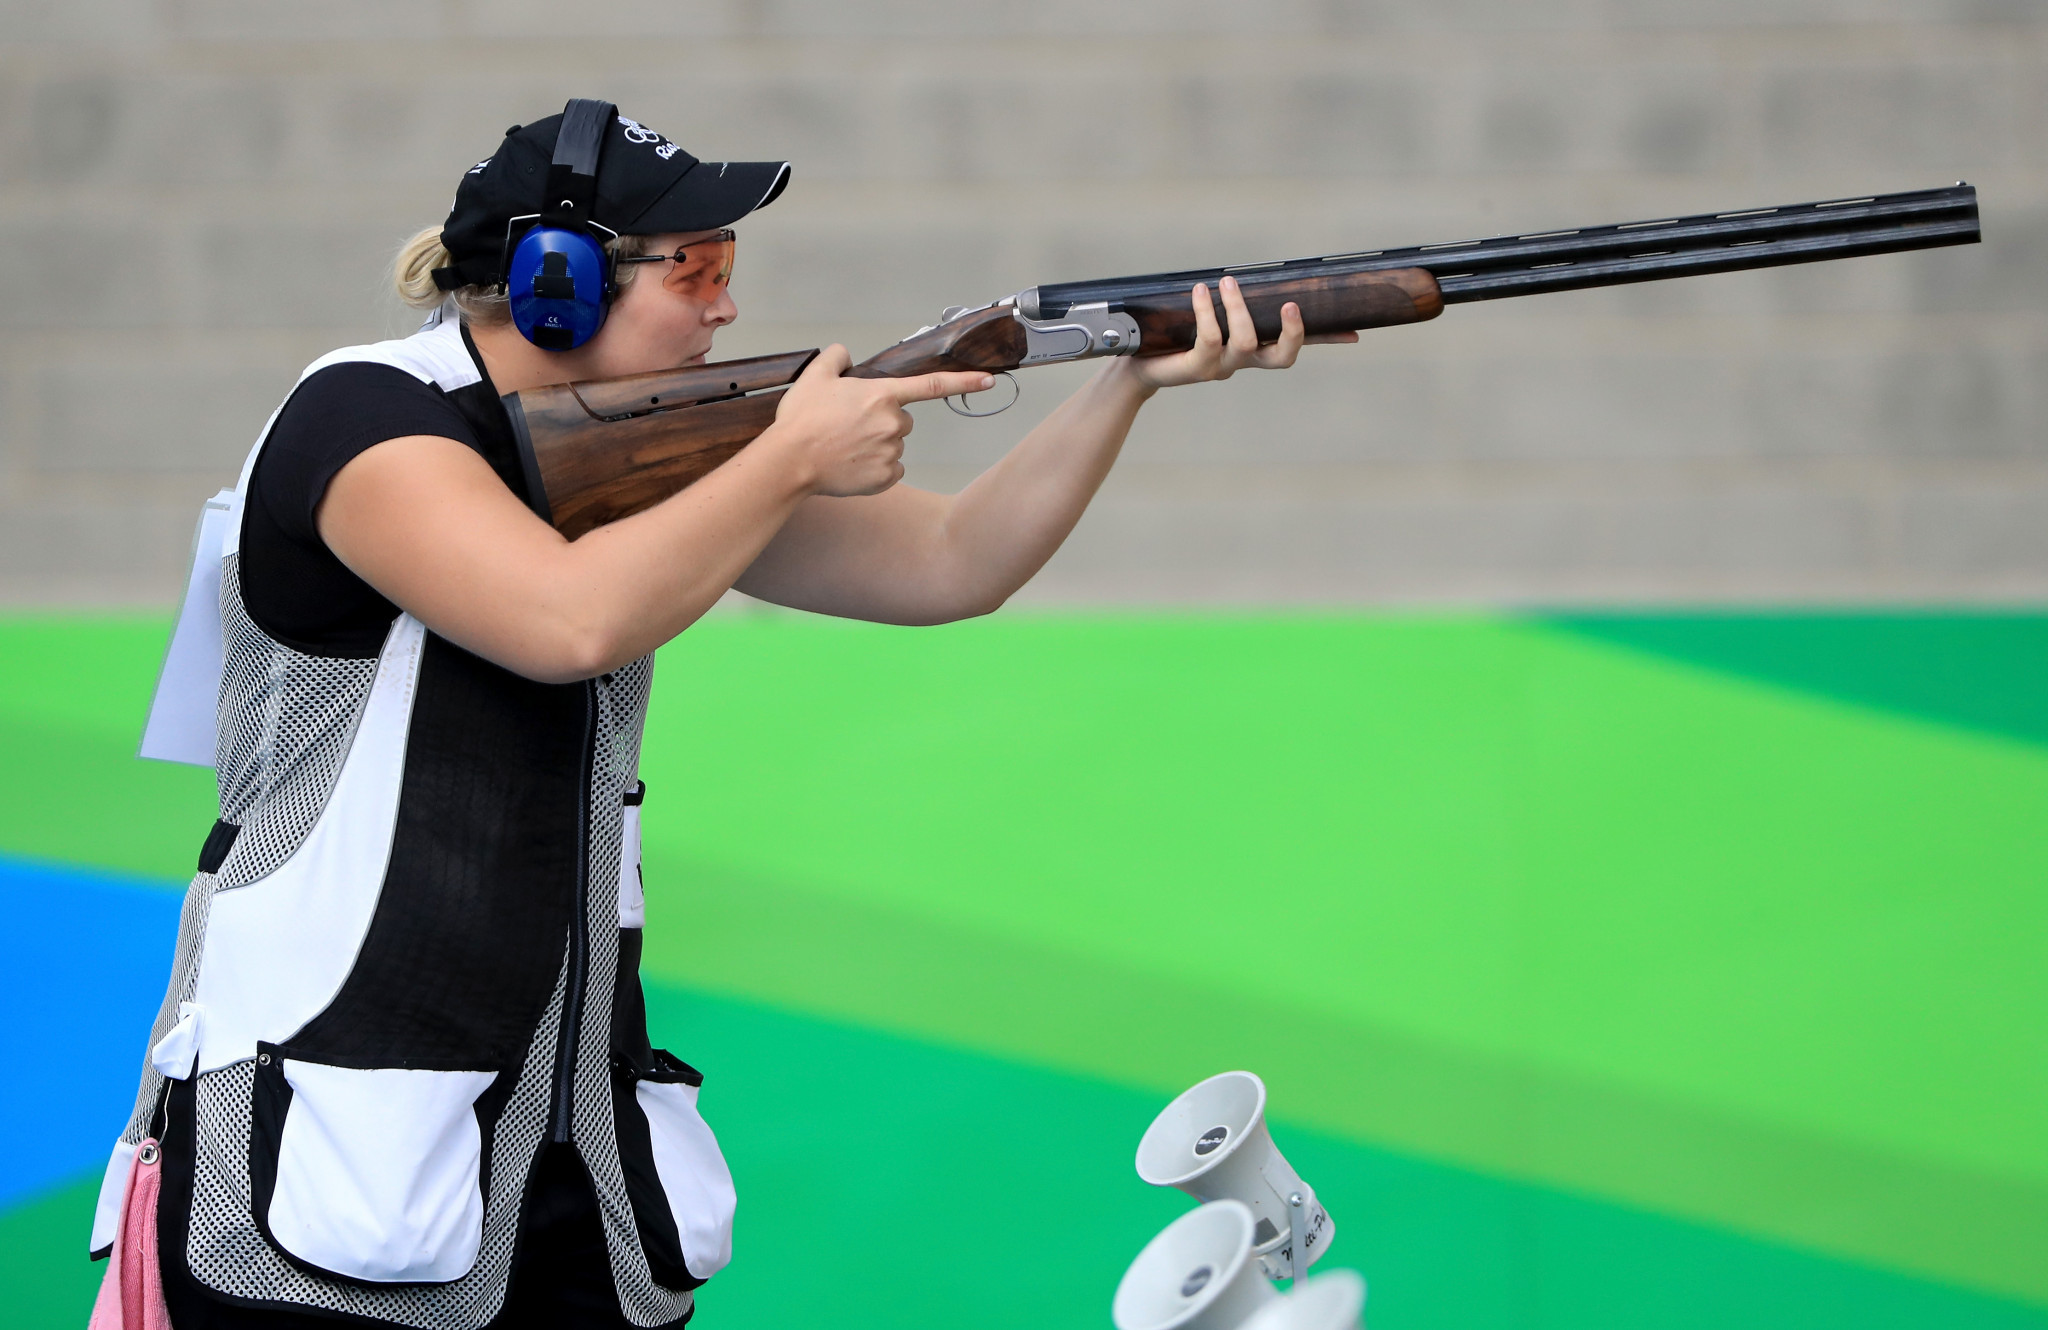 New Zealand announce shooting team for Gold Coast 2018